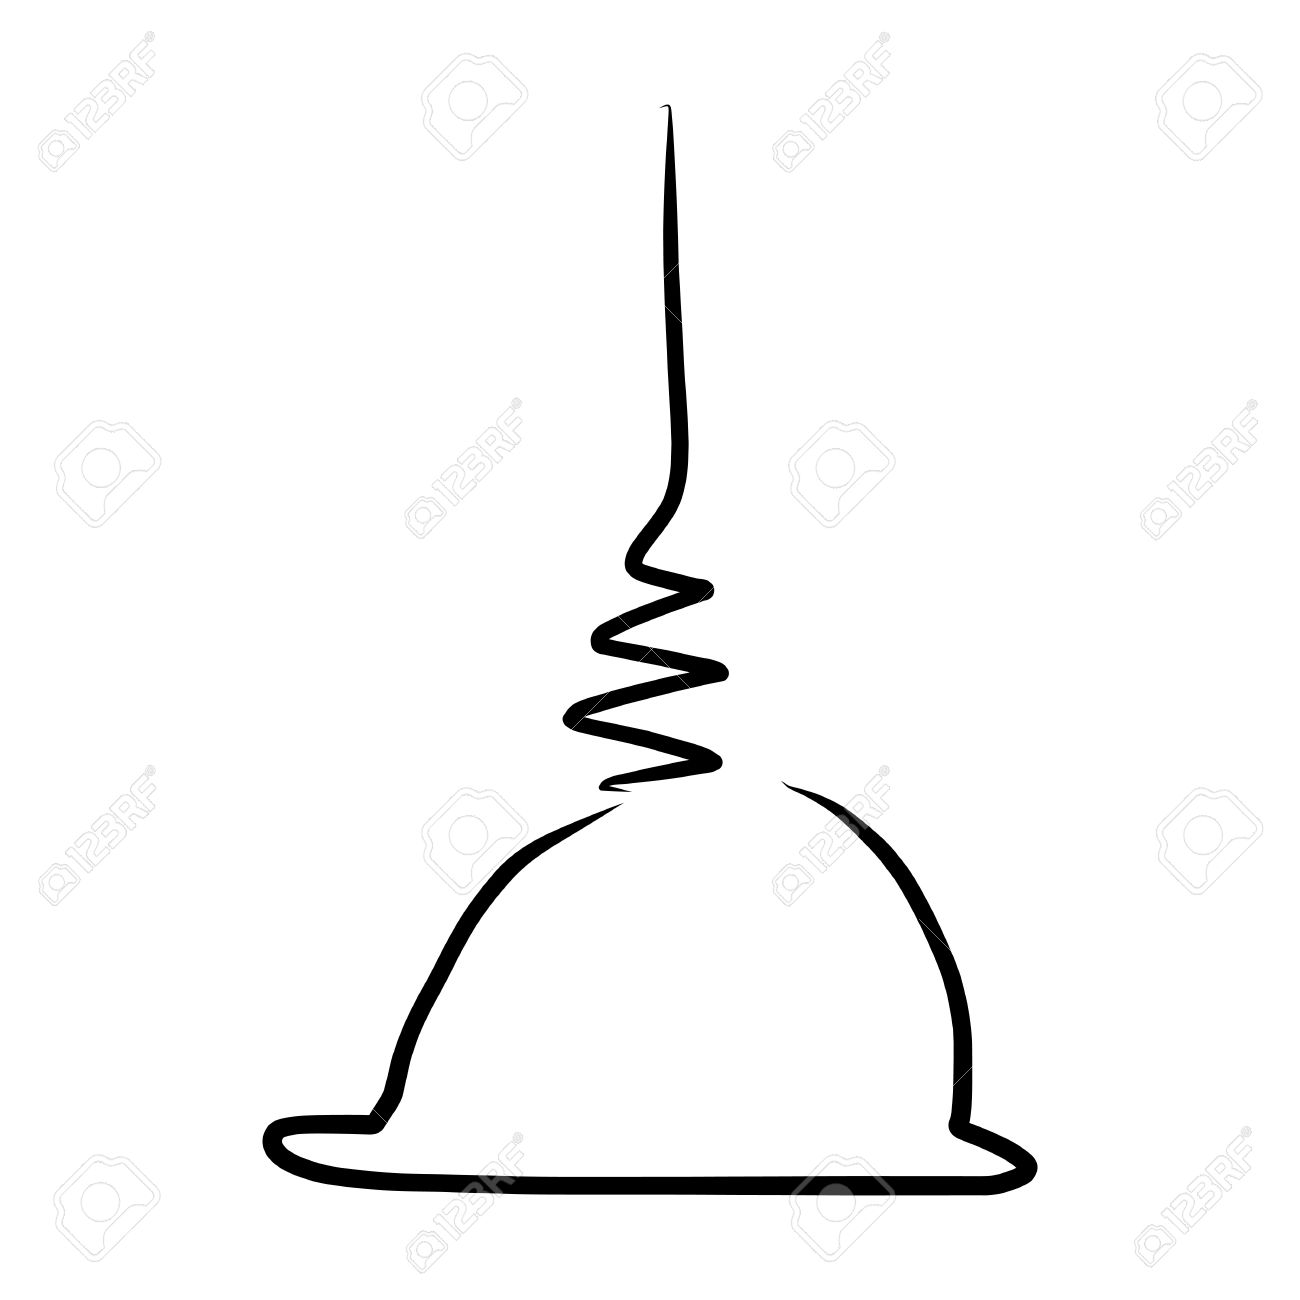 Hand Drawing Design Element Buddha Stupa Royalty Free Cliparts.